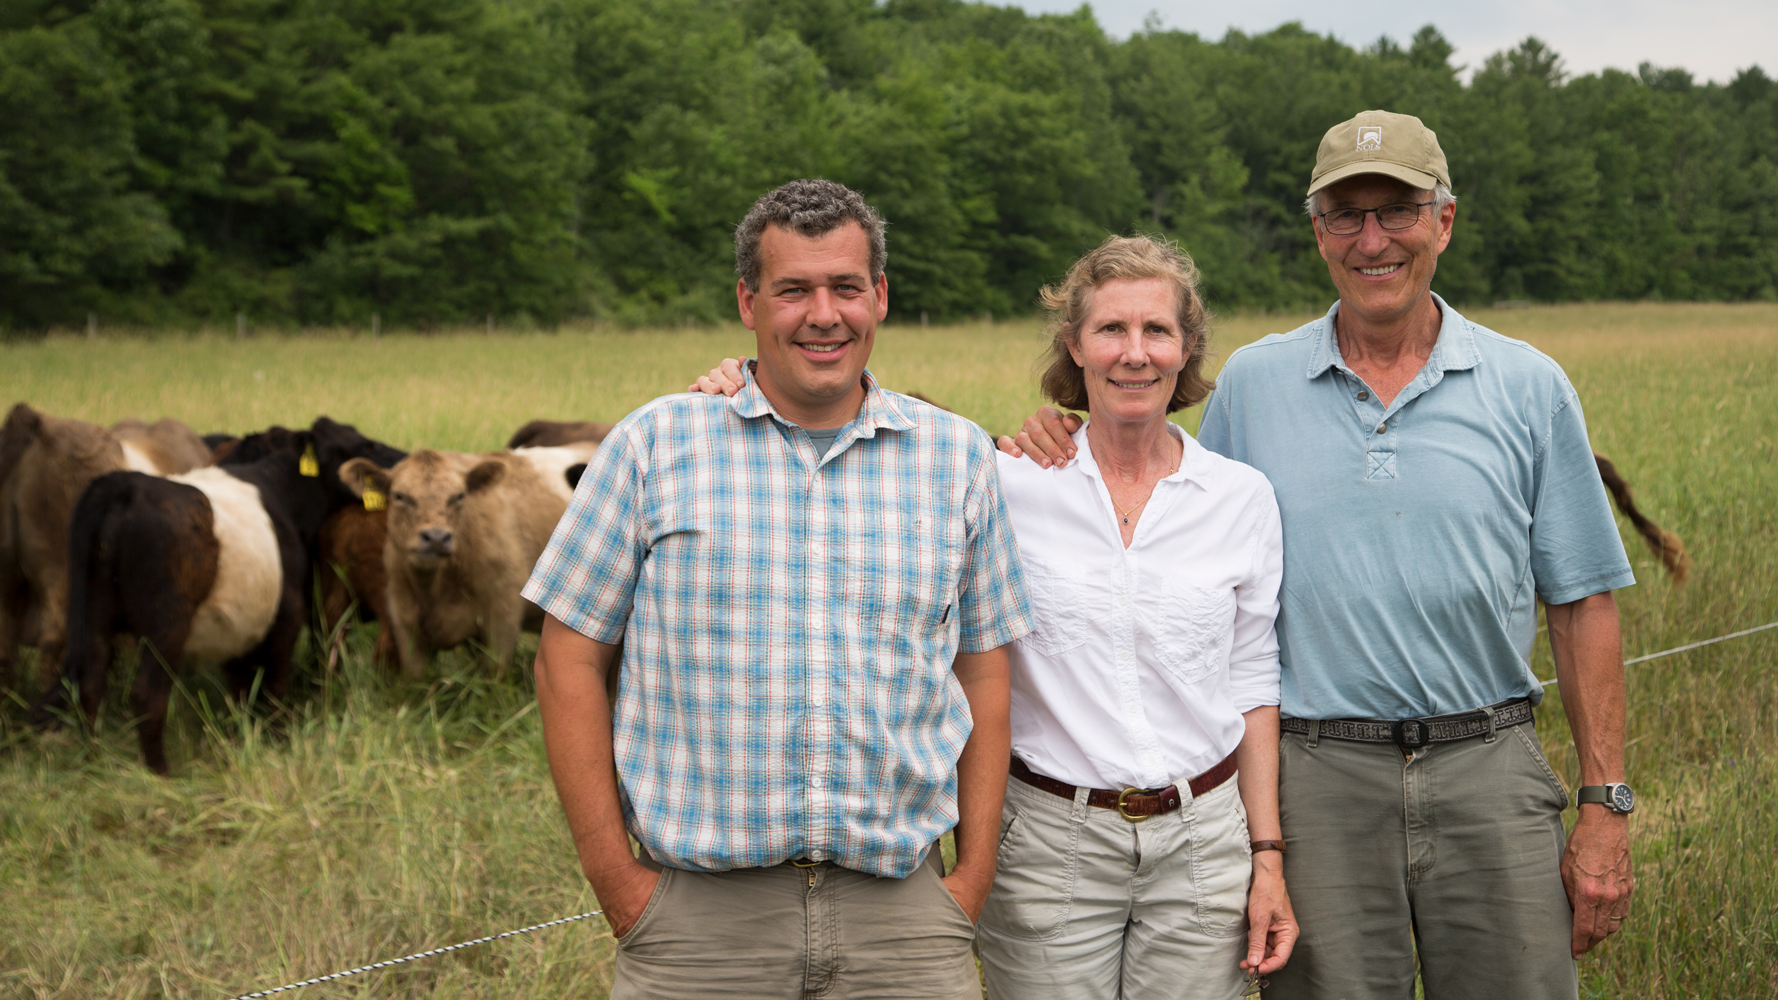 Ed, Diana and Peter standing in front of our herd of Belted Galloways.